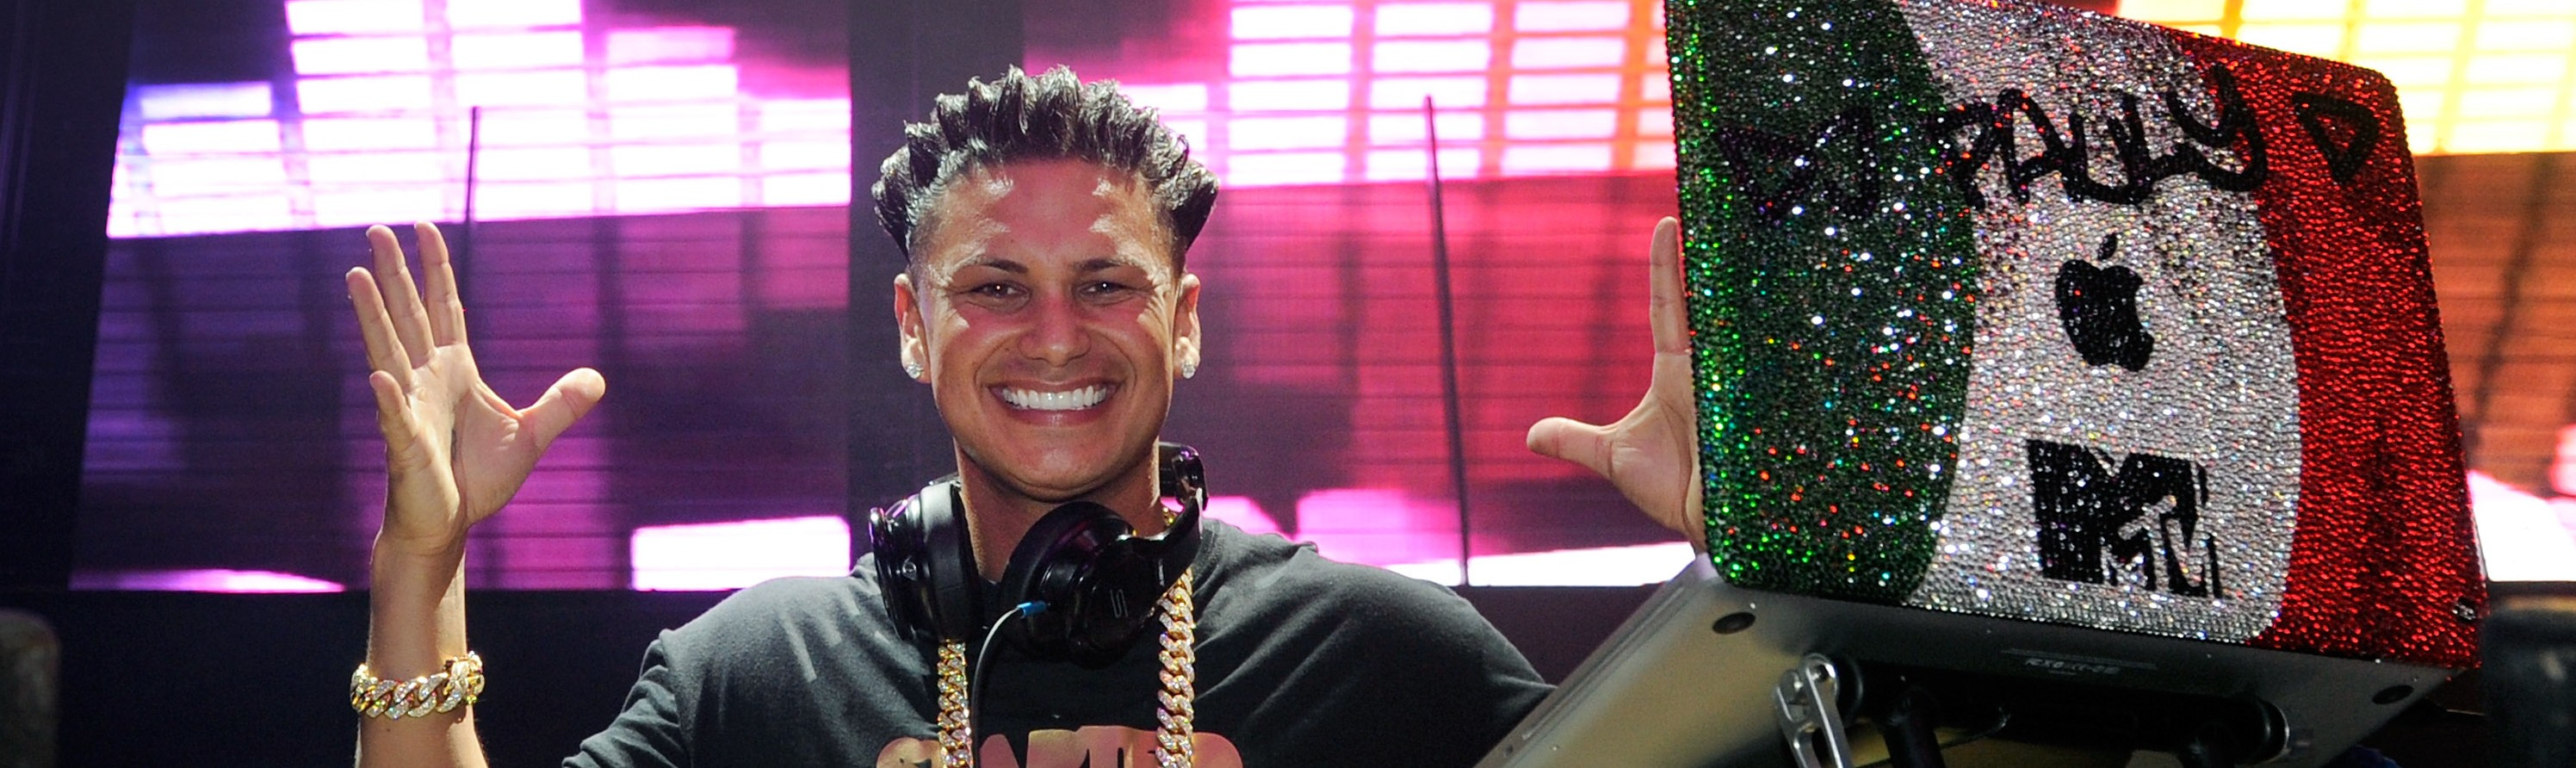 "DJ Paul ""Pauly D"" DelVecchio at Haze Nightclub at the Aria Resort & Casino at CityCenter Feb. 16 in Las Vegas."